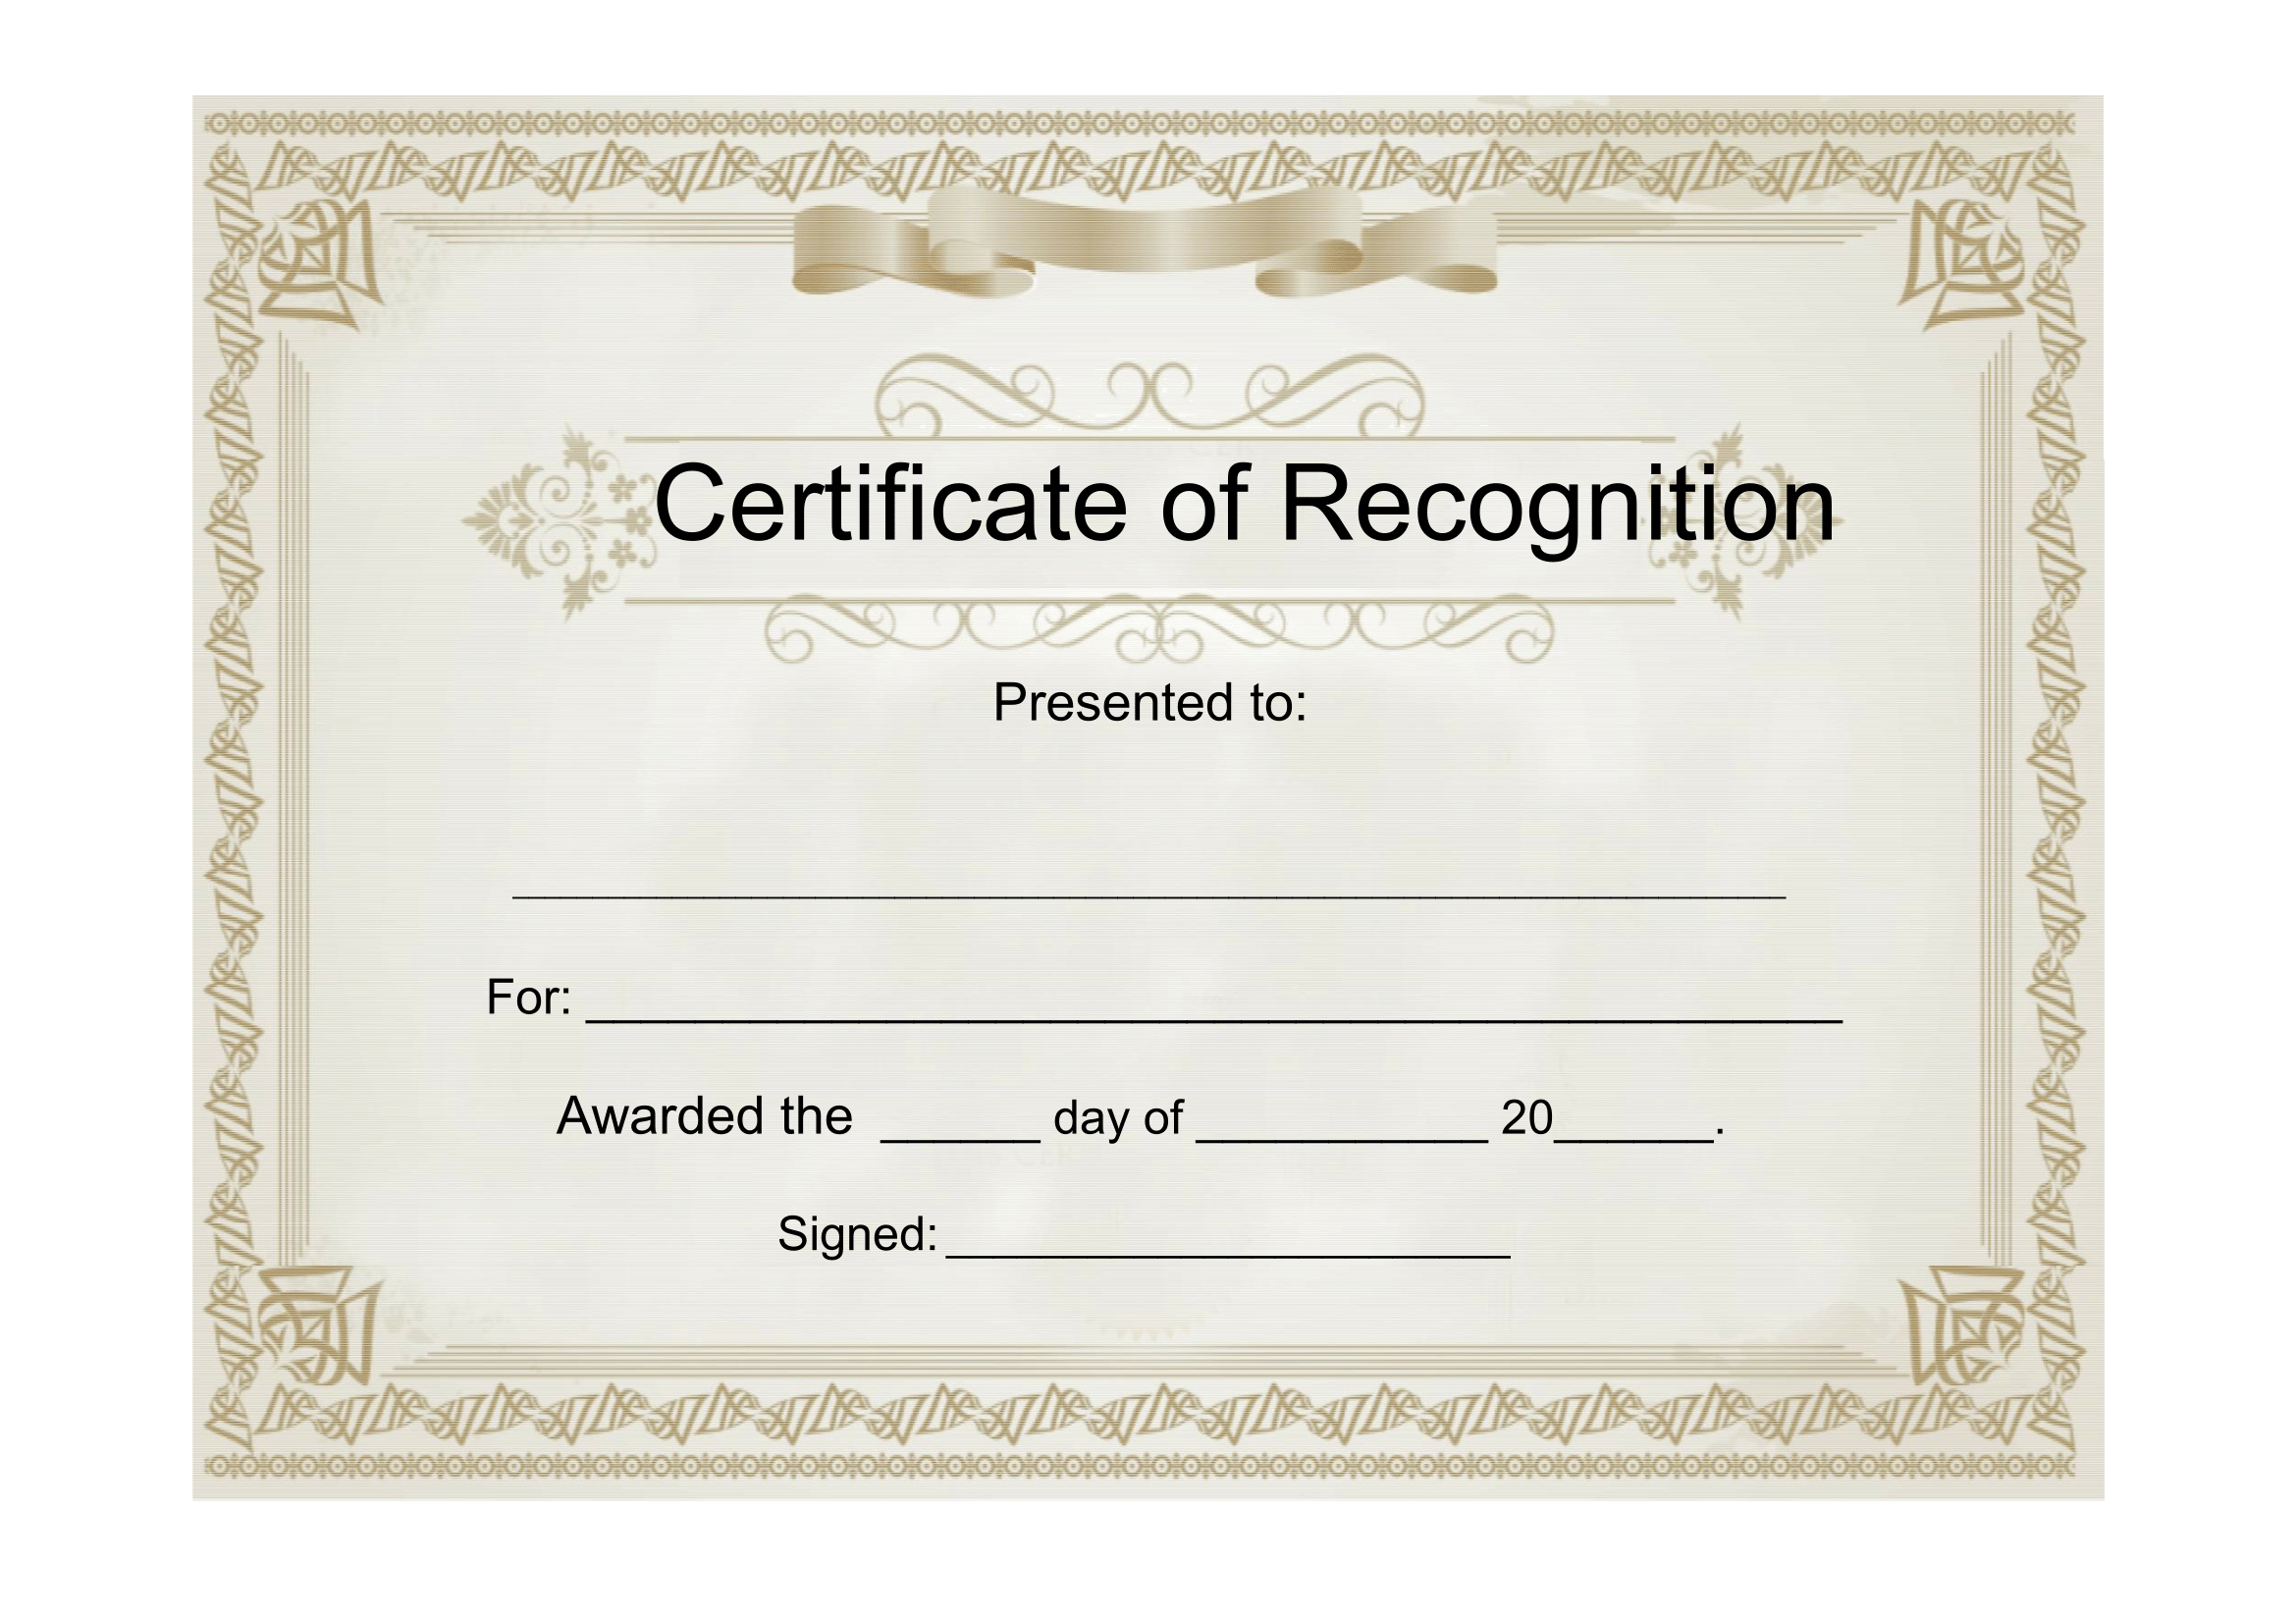 Sample Certificate Of Recognition Free Download Template